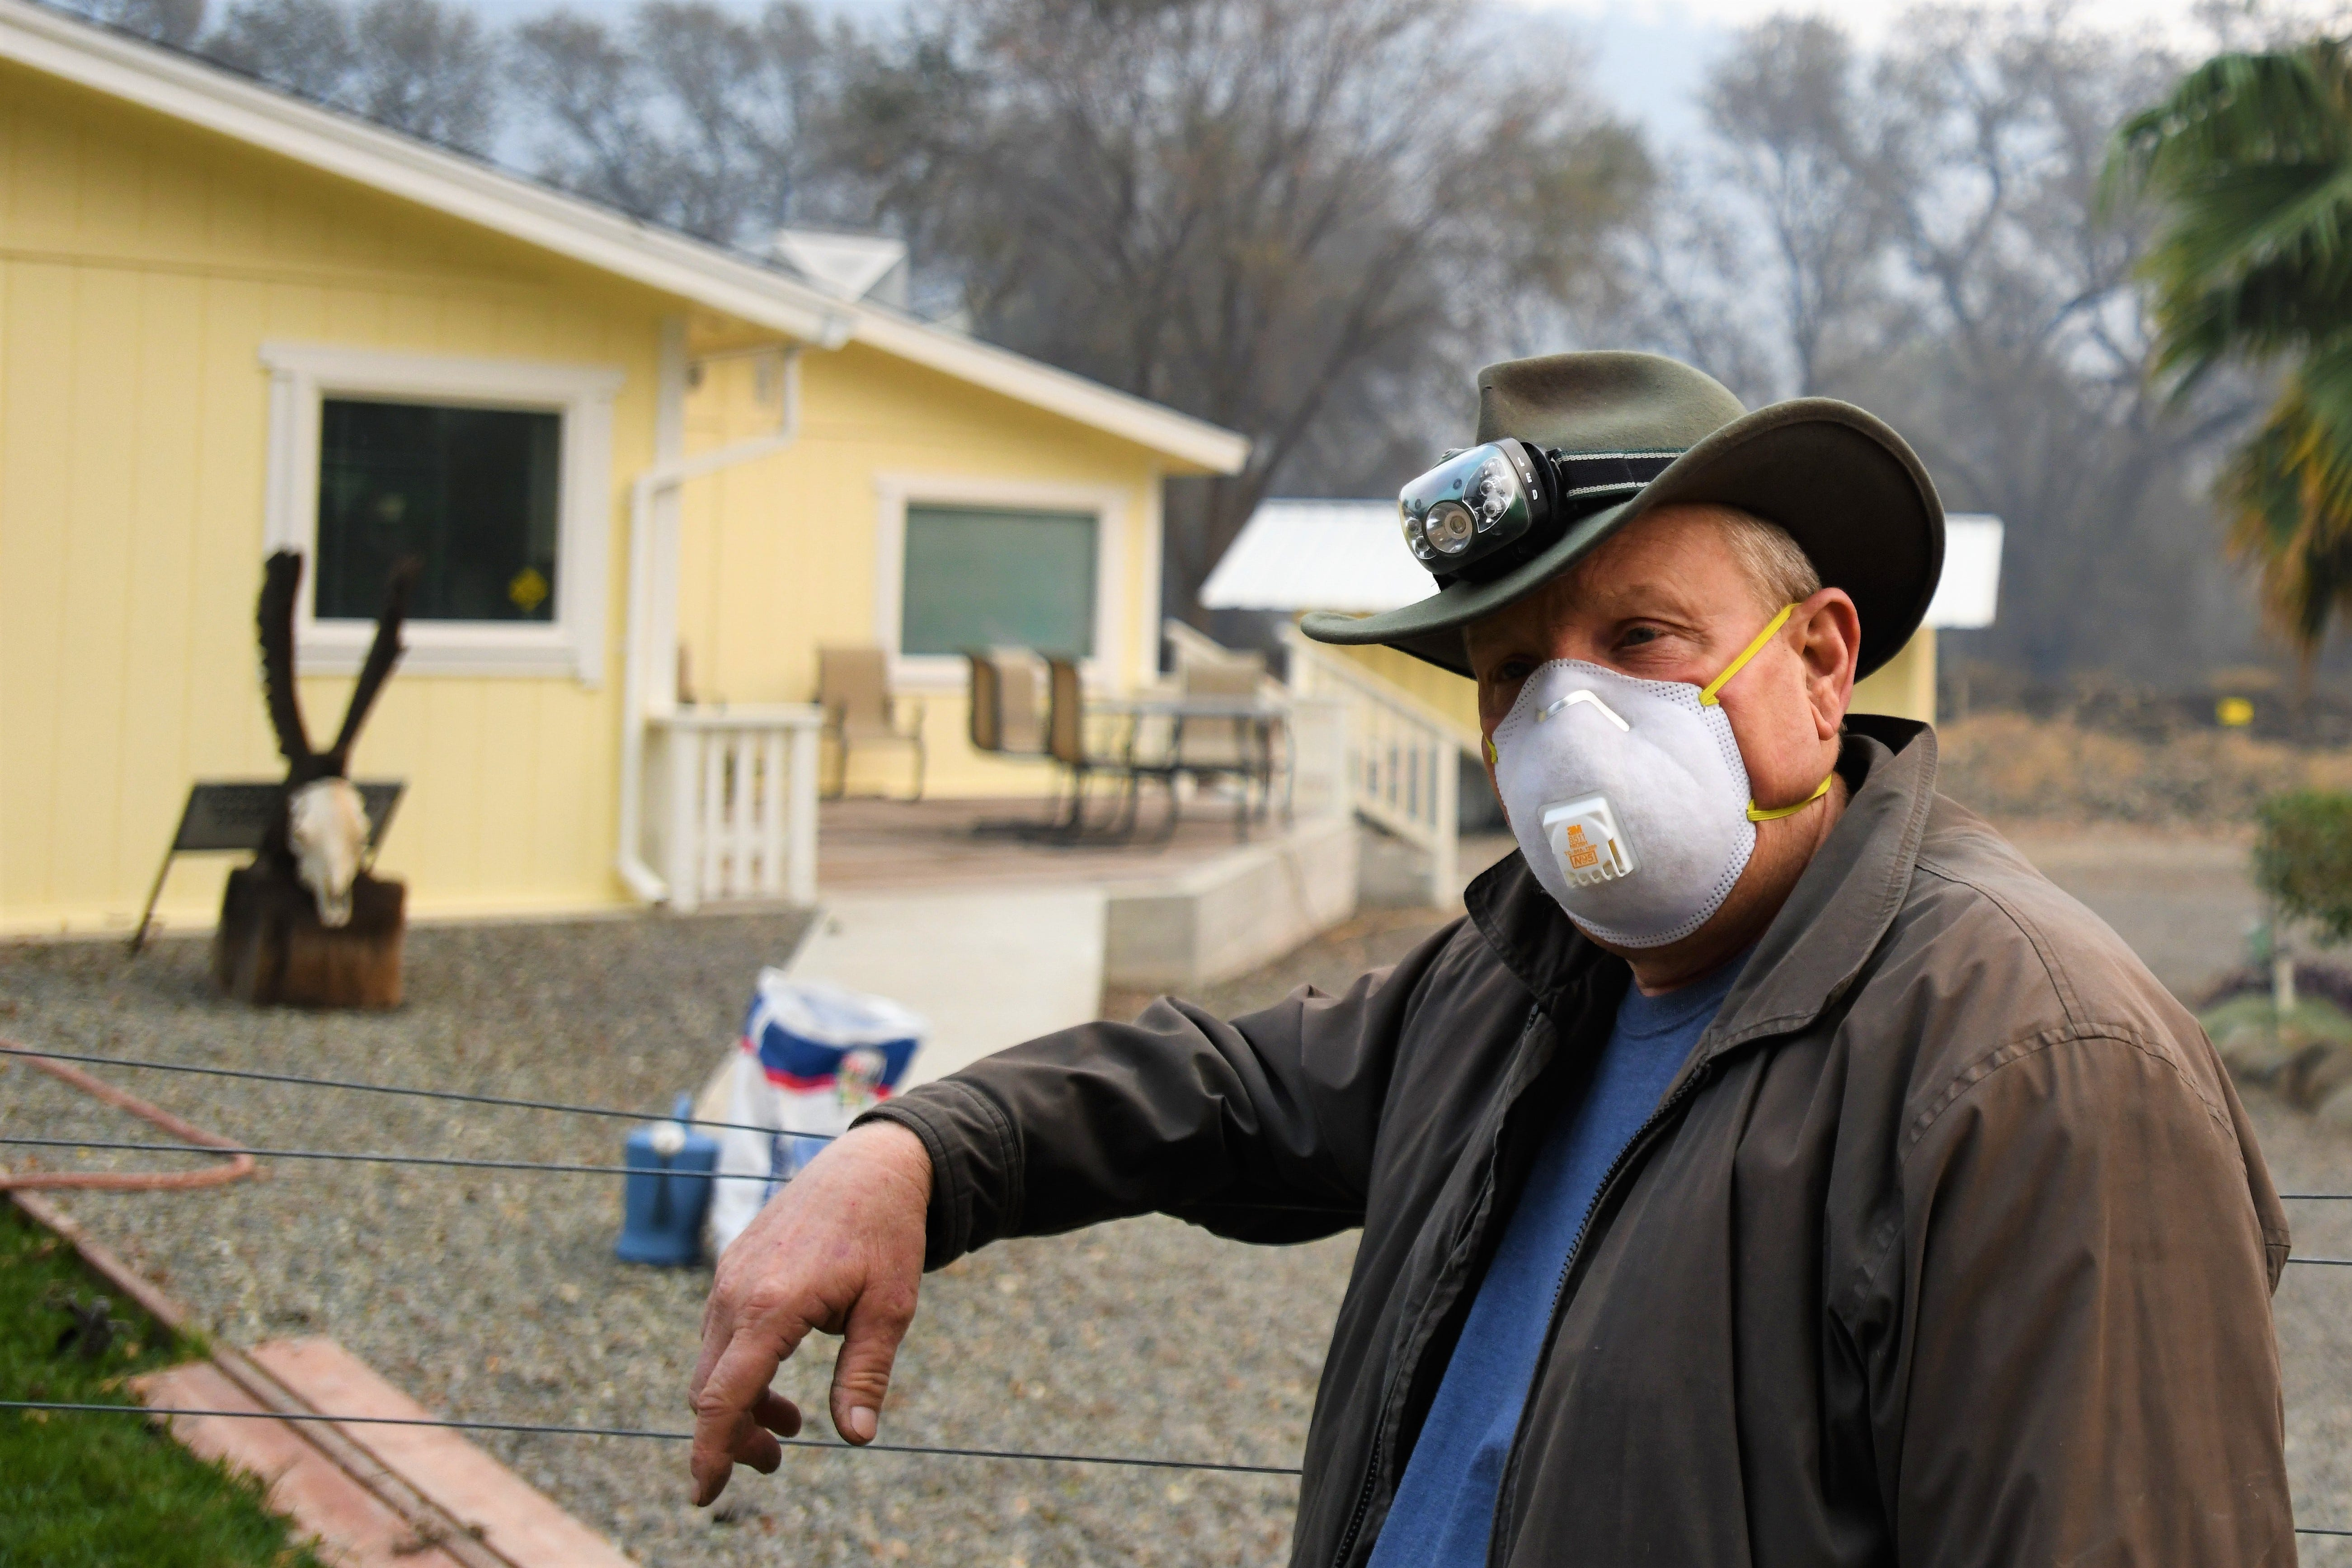 Inside the Camp Fire perimeter, these residents faced the inferno. Now, they're staying put.